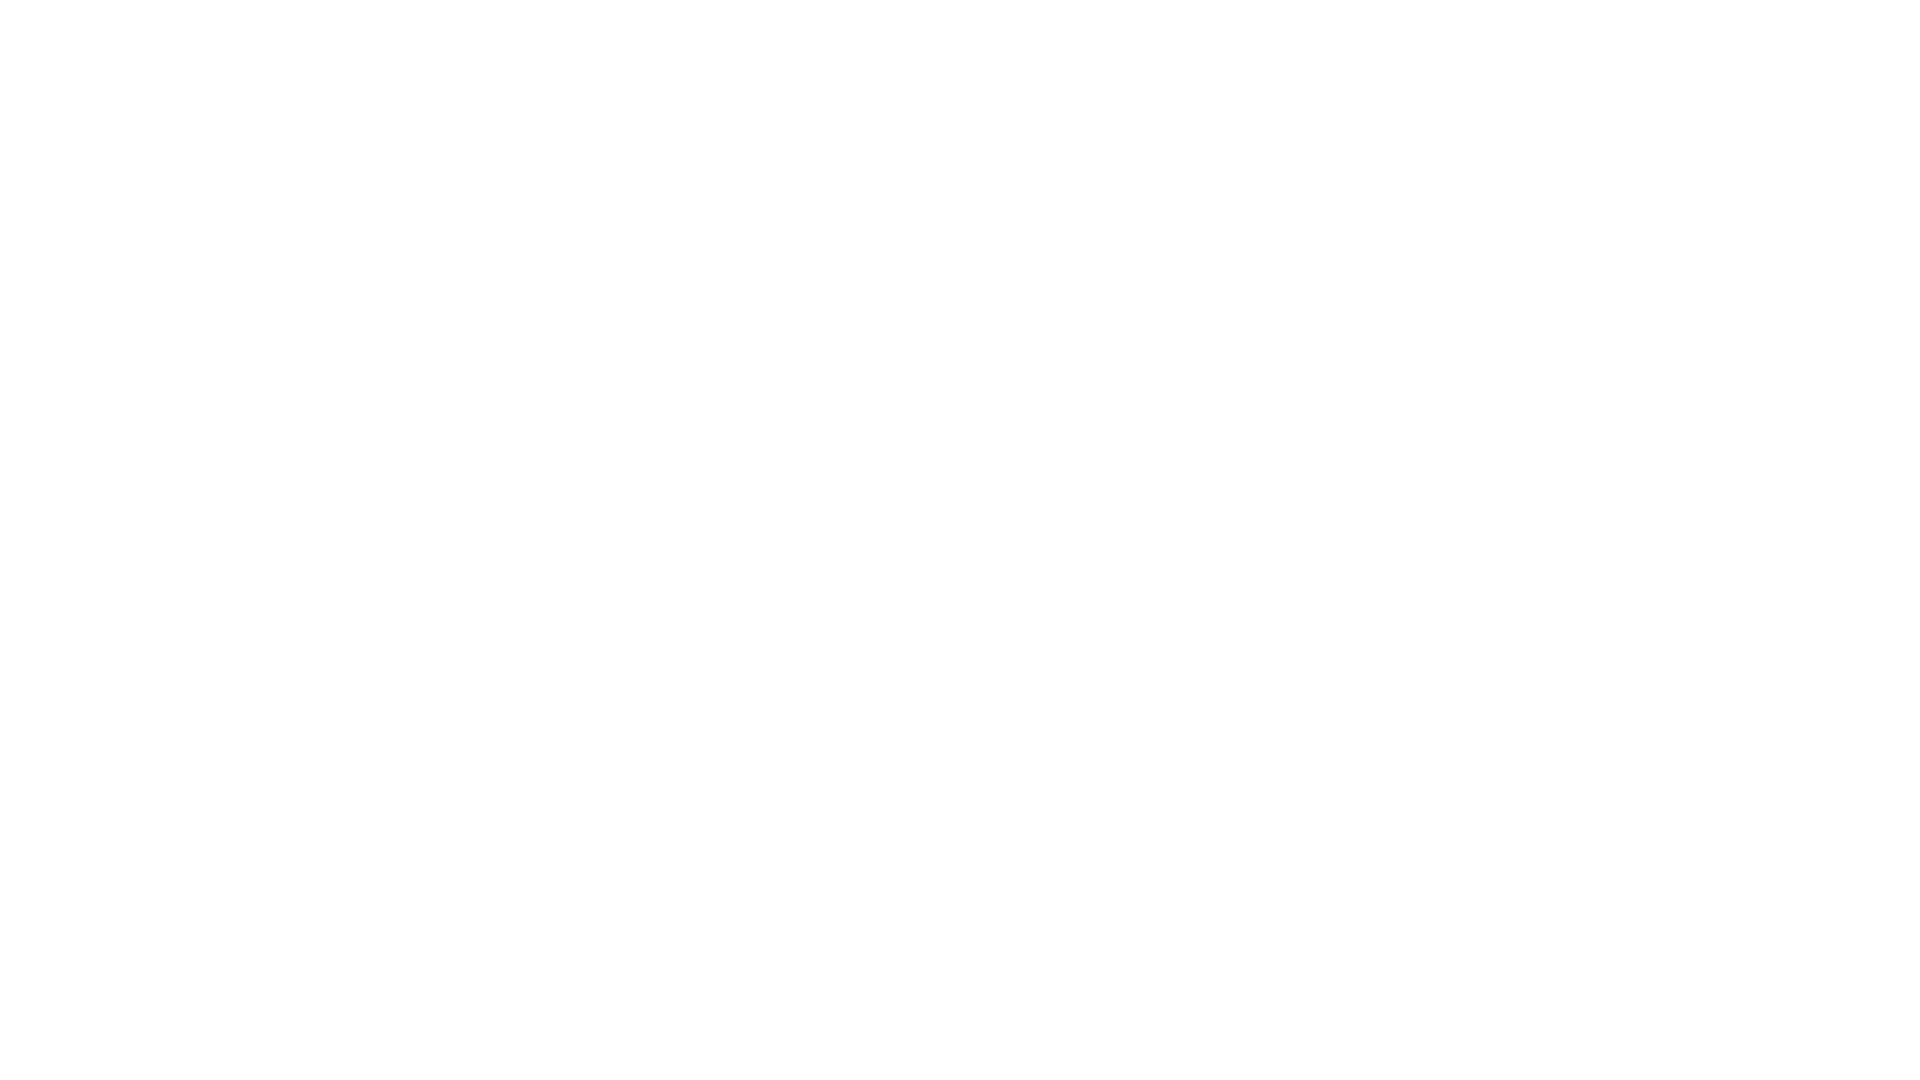 Be Caring.  Everything comes easier when you truly care.